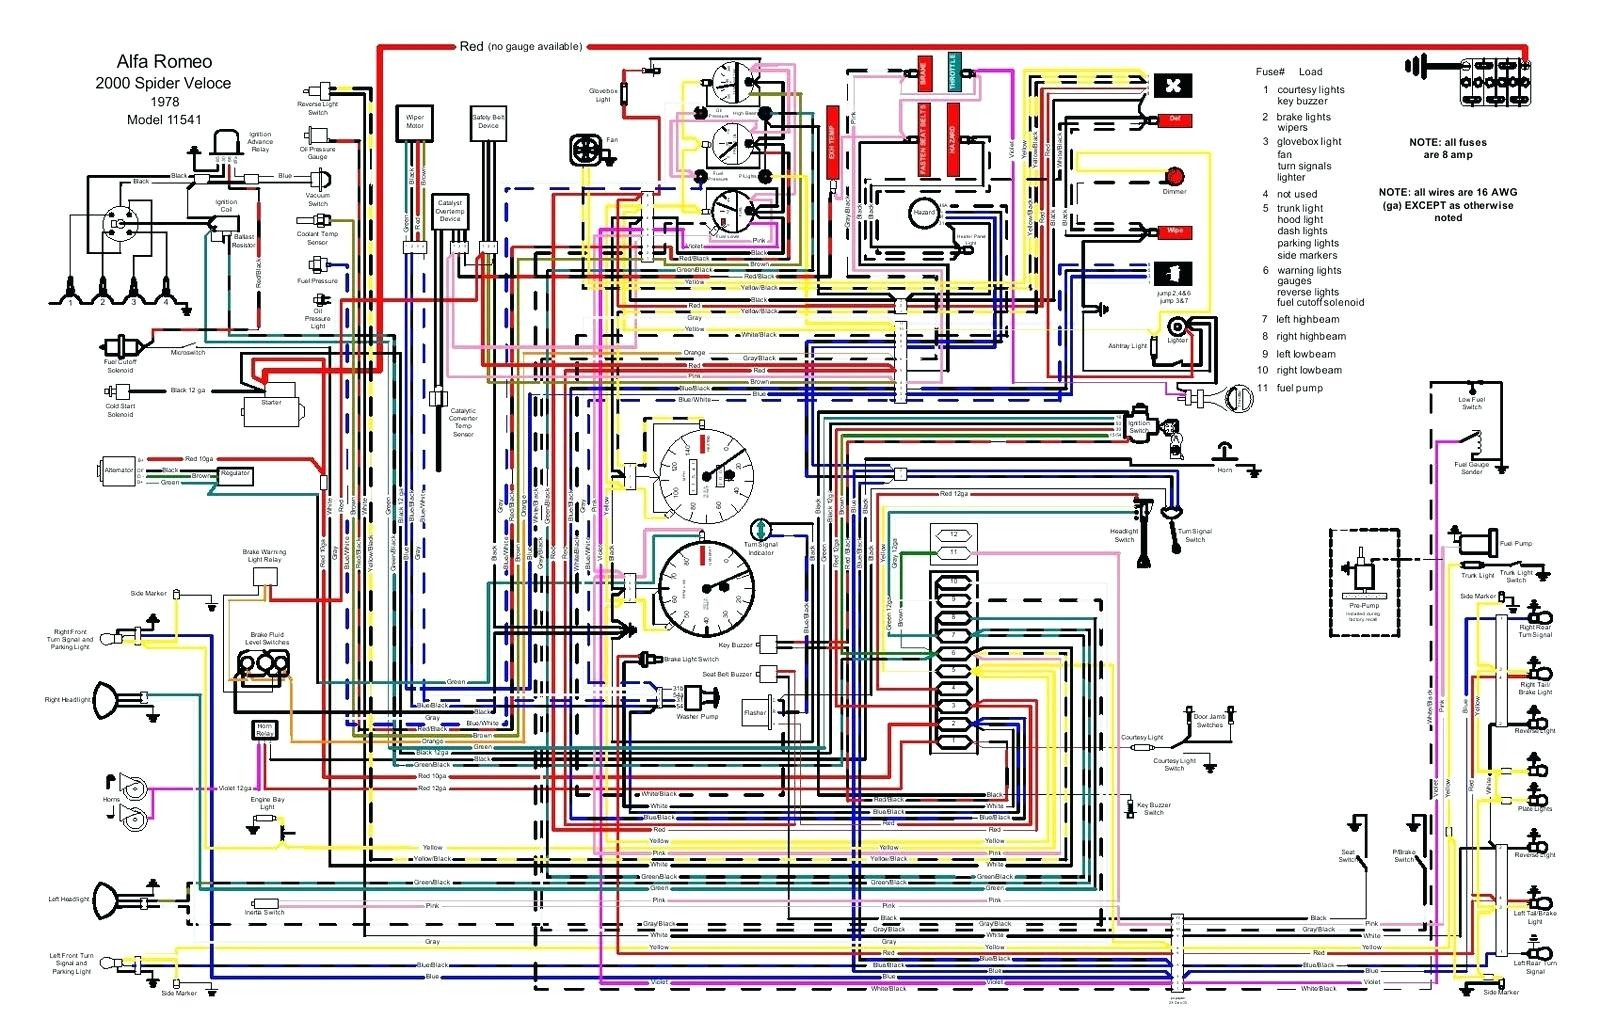 Basic Electrical Wiring Diagrams Software | Wiring Diagram - Automotive Wiring Diagram Software